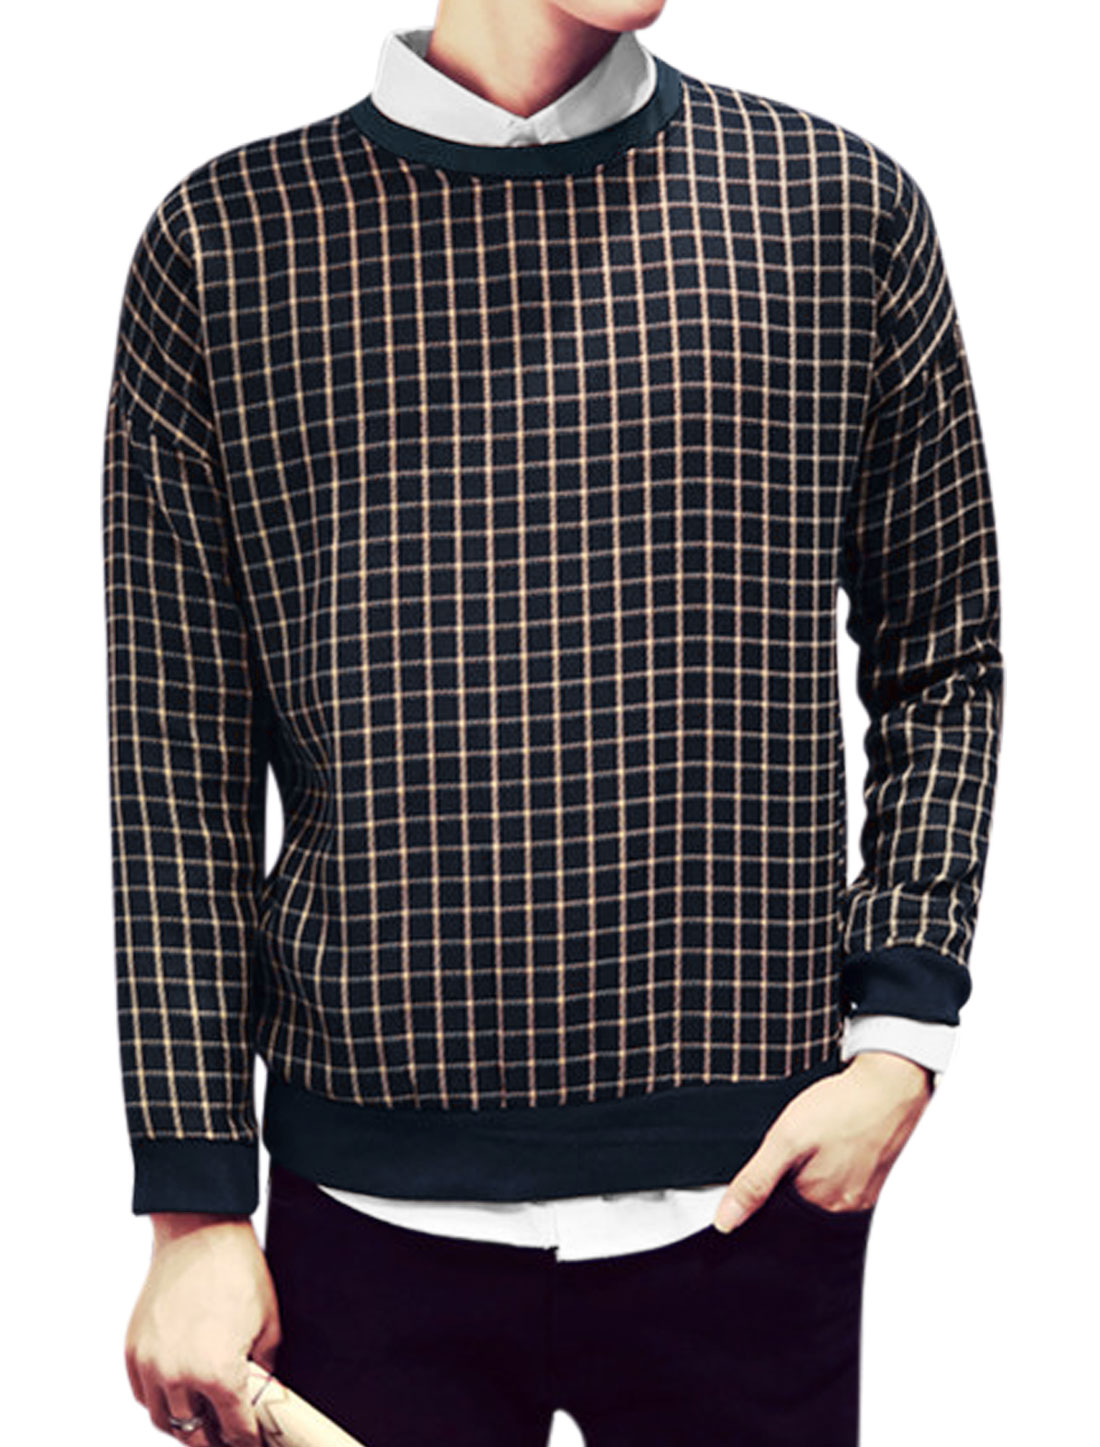 Men Plaids Print Crew Neck Leisure Long Sleeves Slipover Sweatshirt Beige Blue M